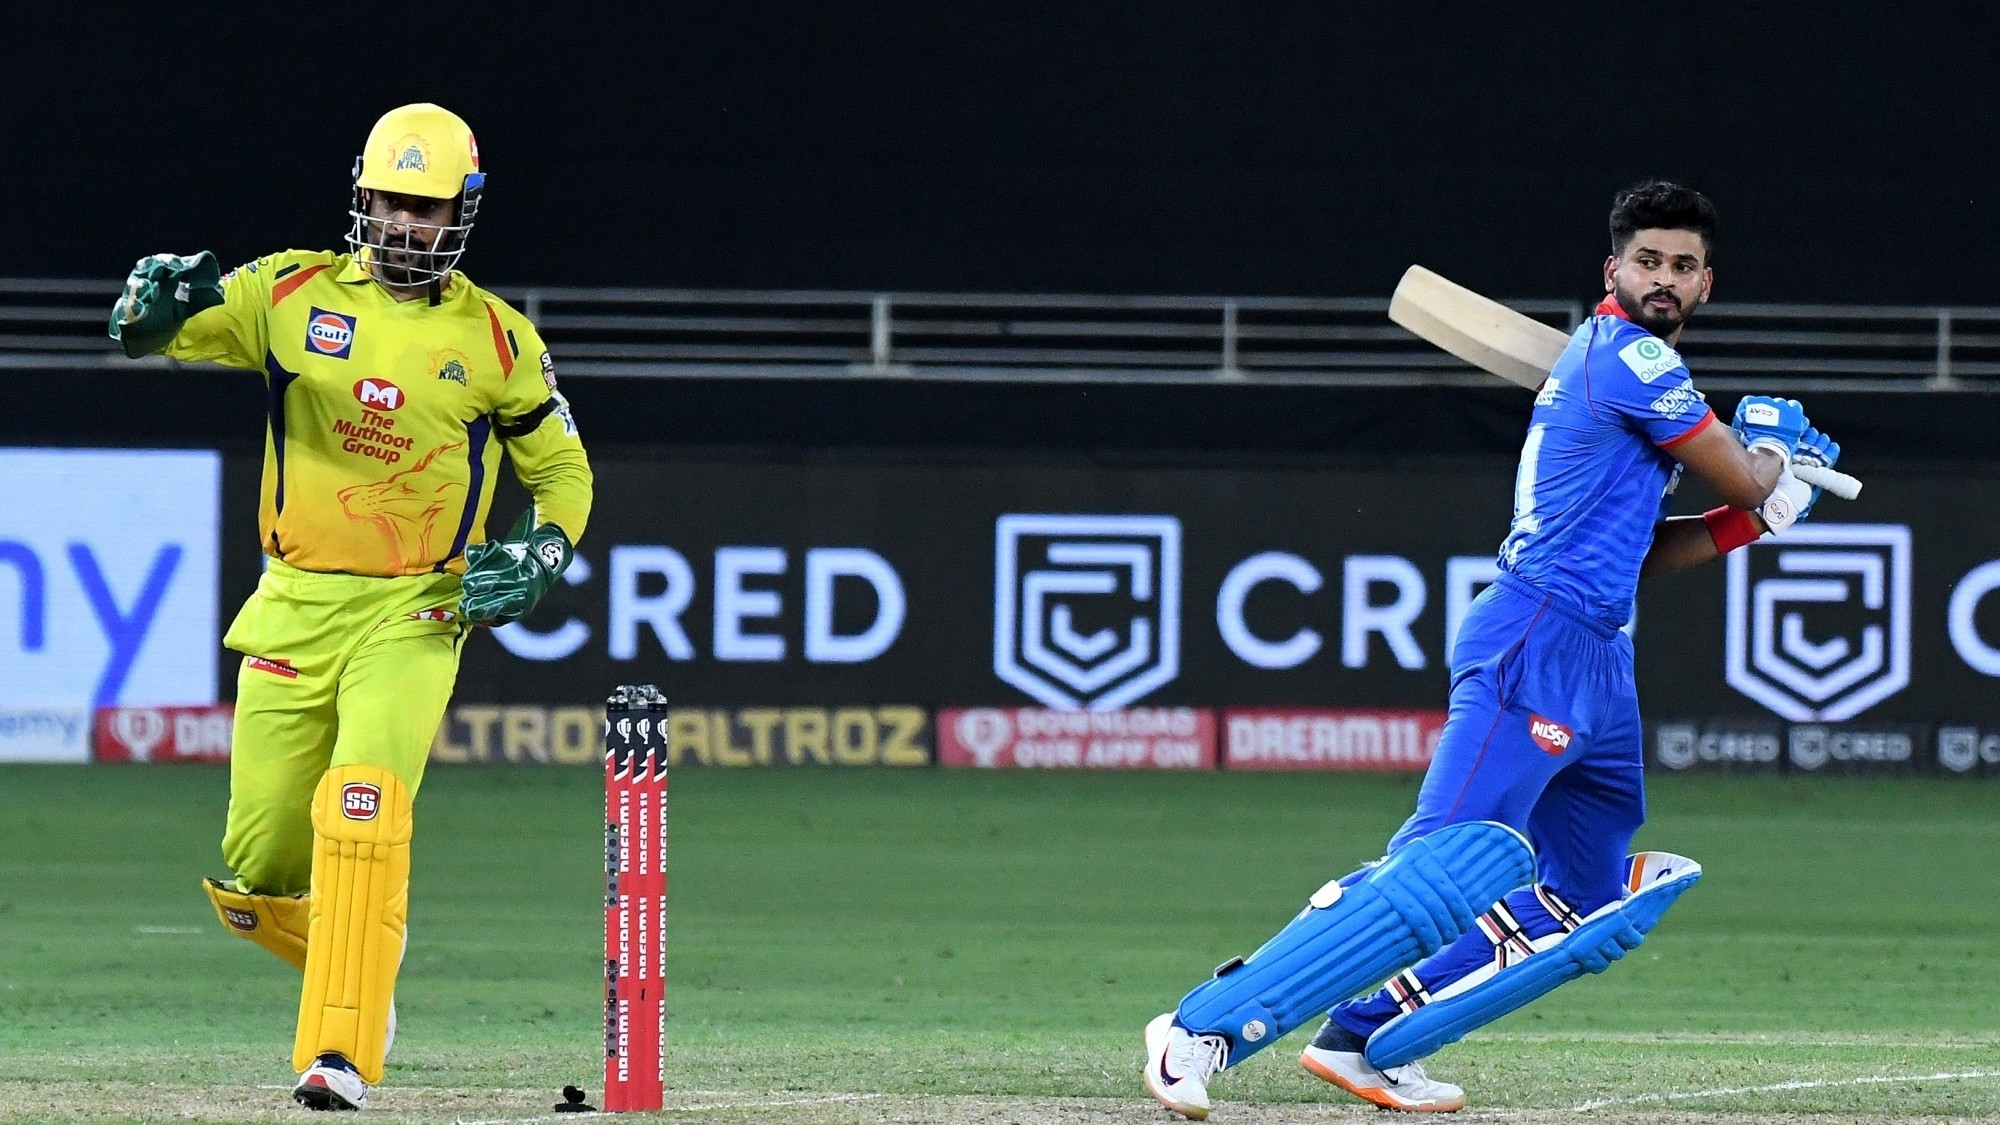 IPL 2020: Match 34, DC v CSK - Statistical Preview of the Match